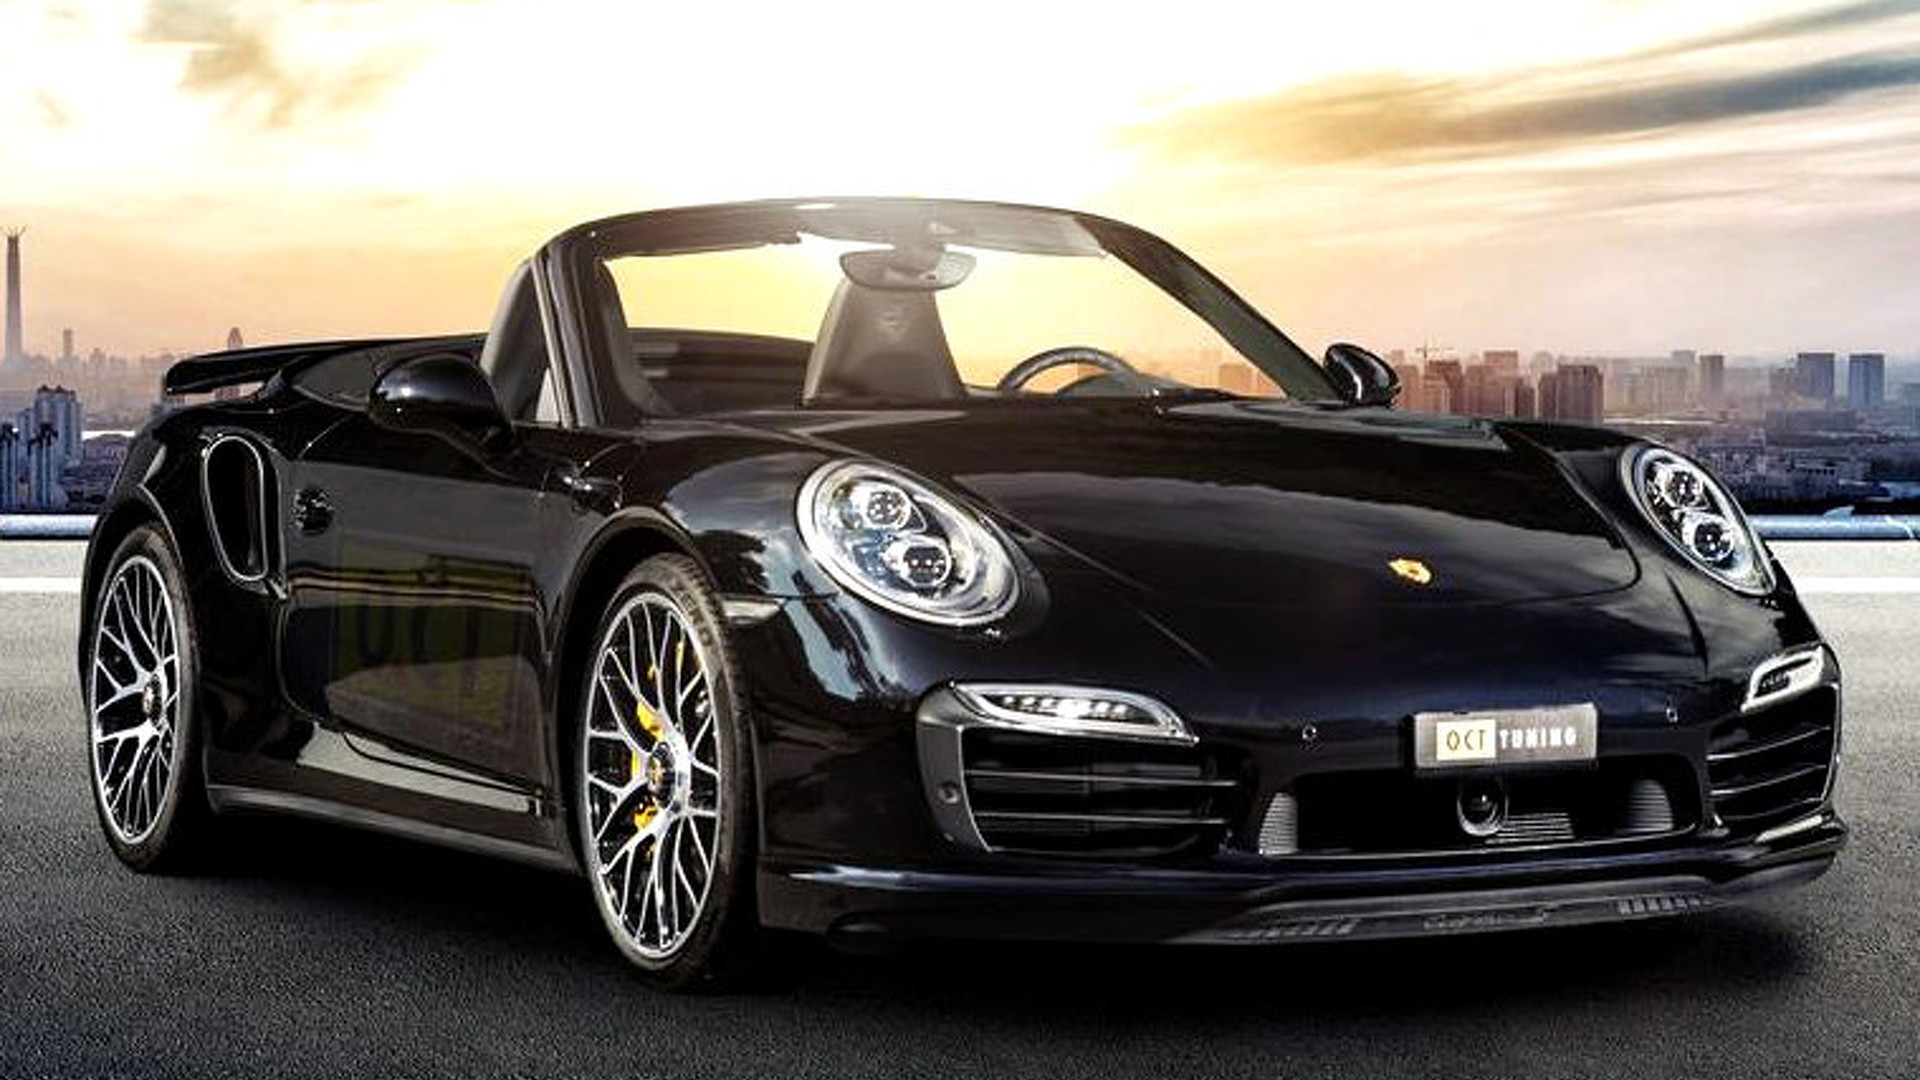 Porsche 911 Turbo S Cabriolet By O Ct Tuning Dialed To 669